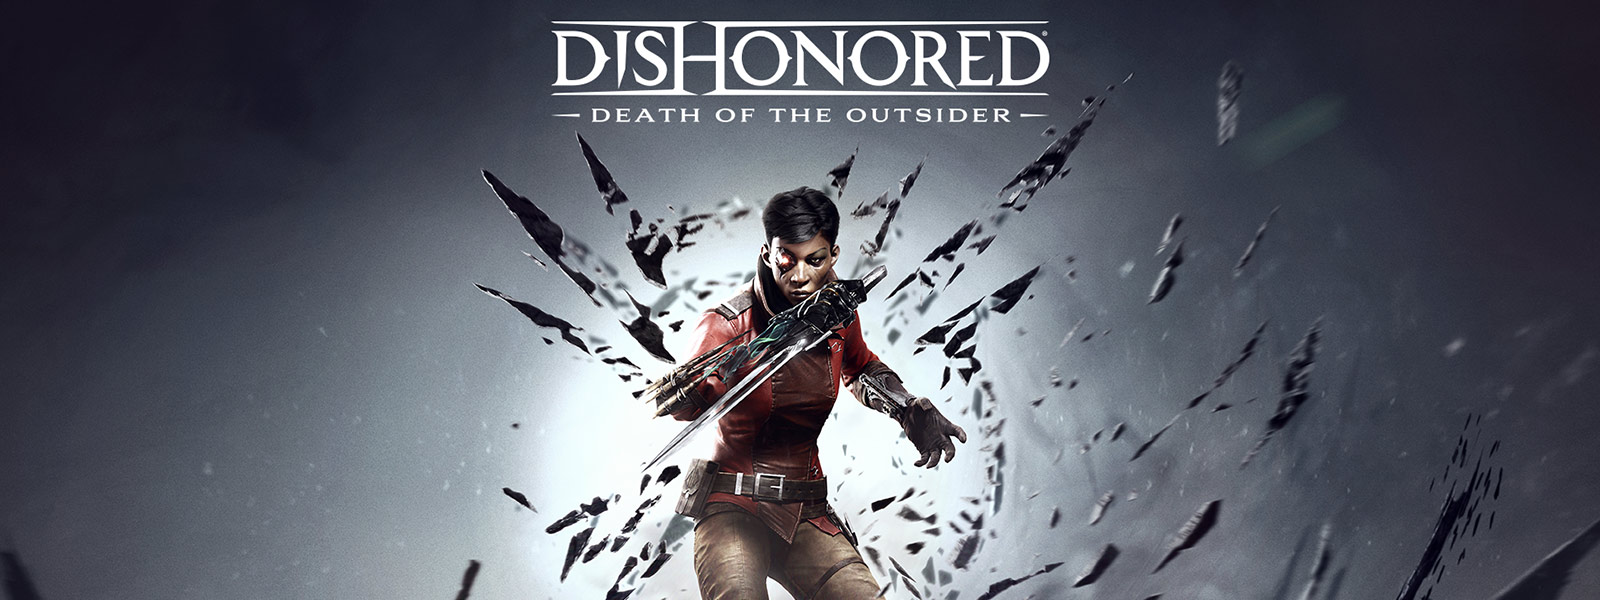 Dishonored 2 - Nieuws